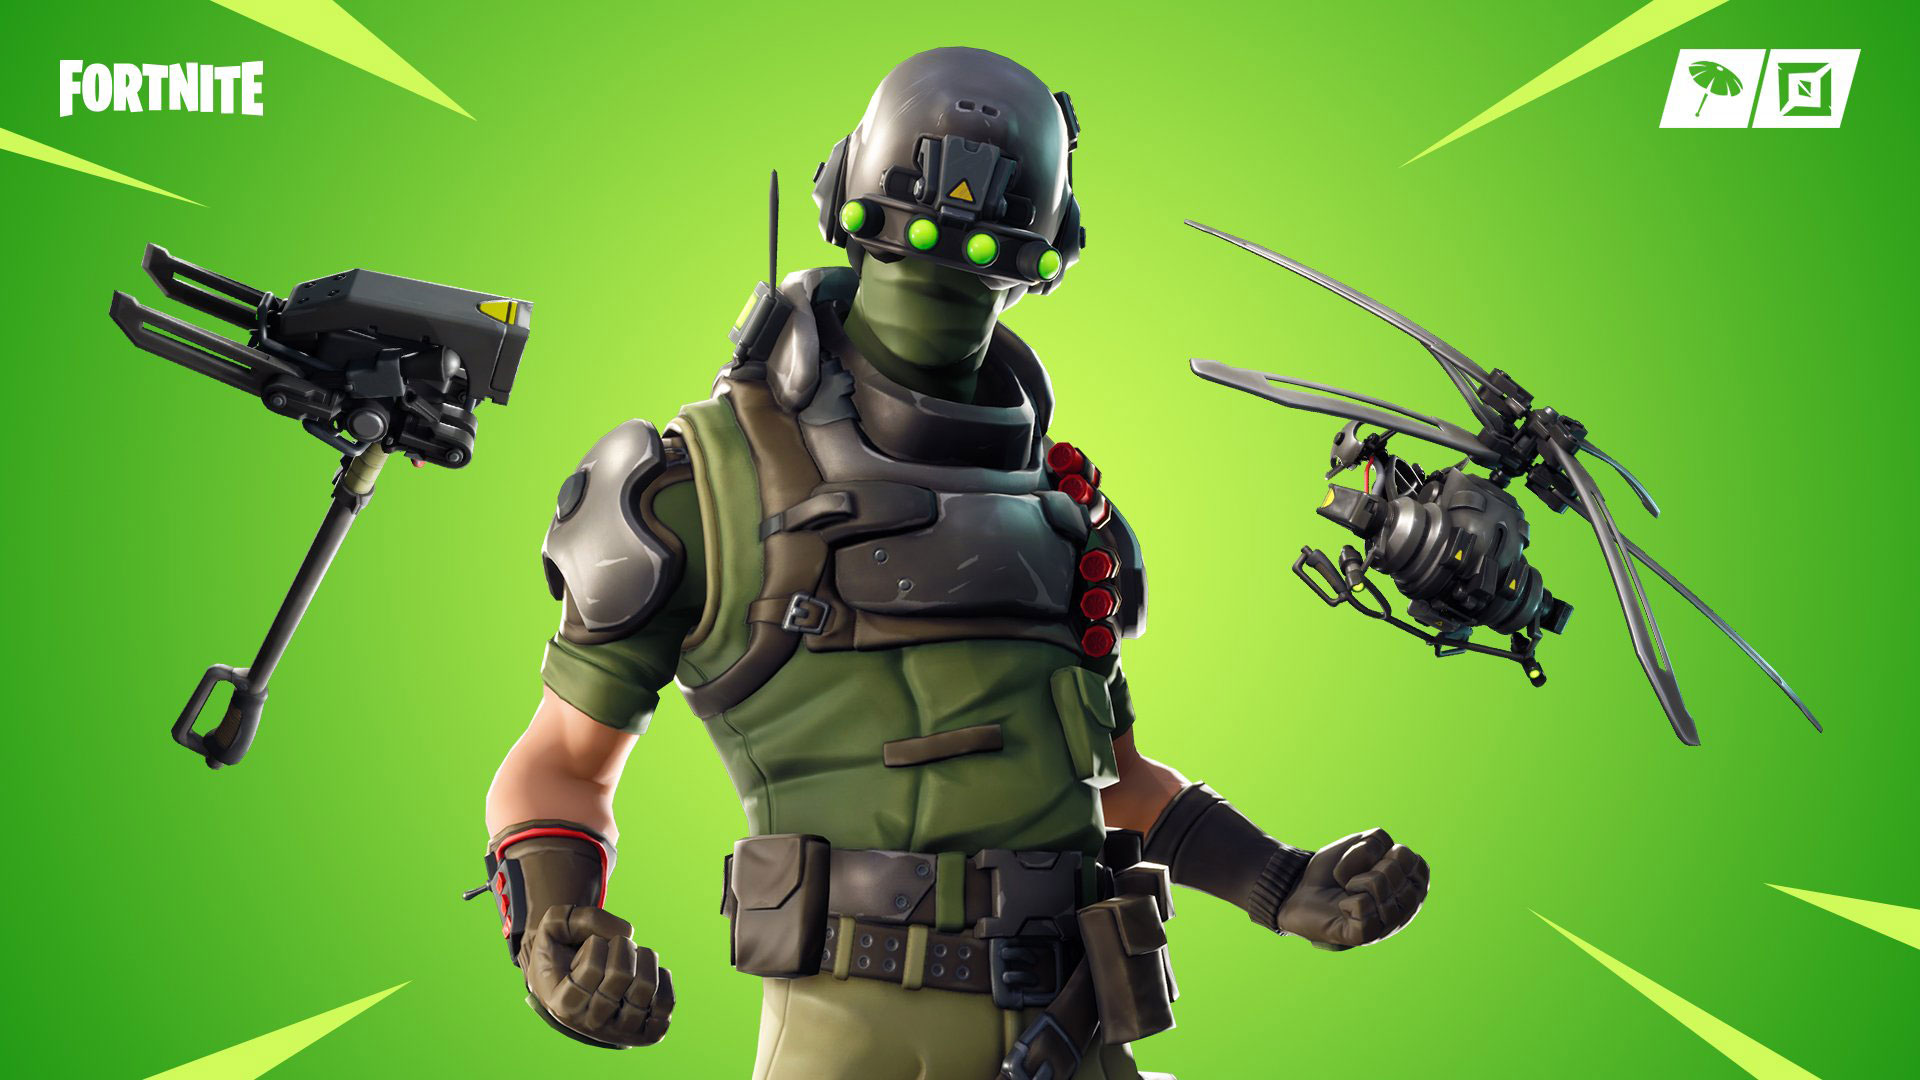 Fortnite Tech Ops Skin   Outfit PNGs Images   Pro Game Guides 1920x1080